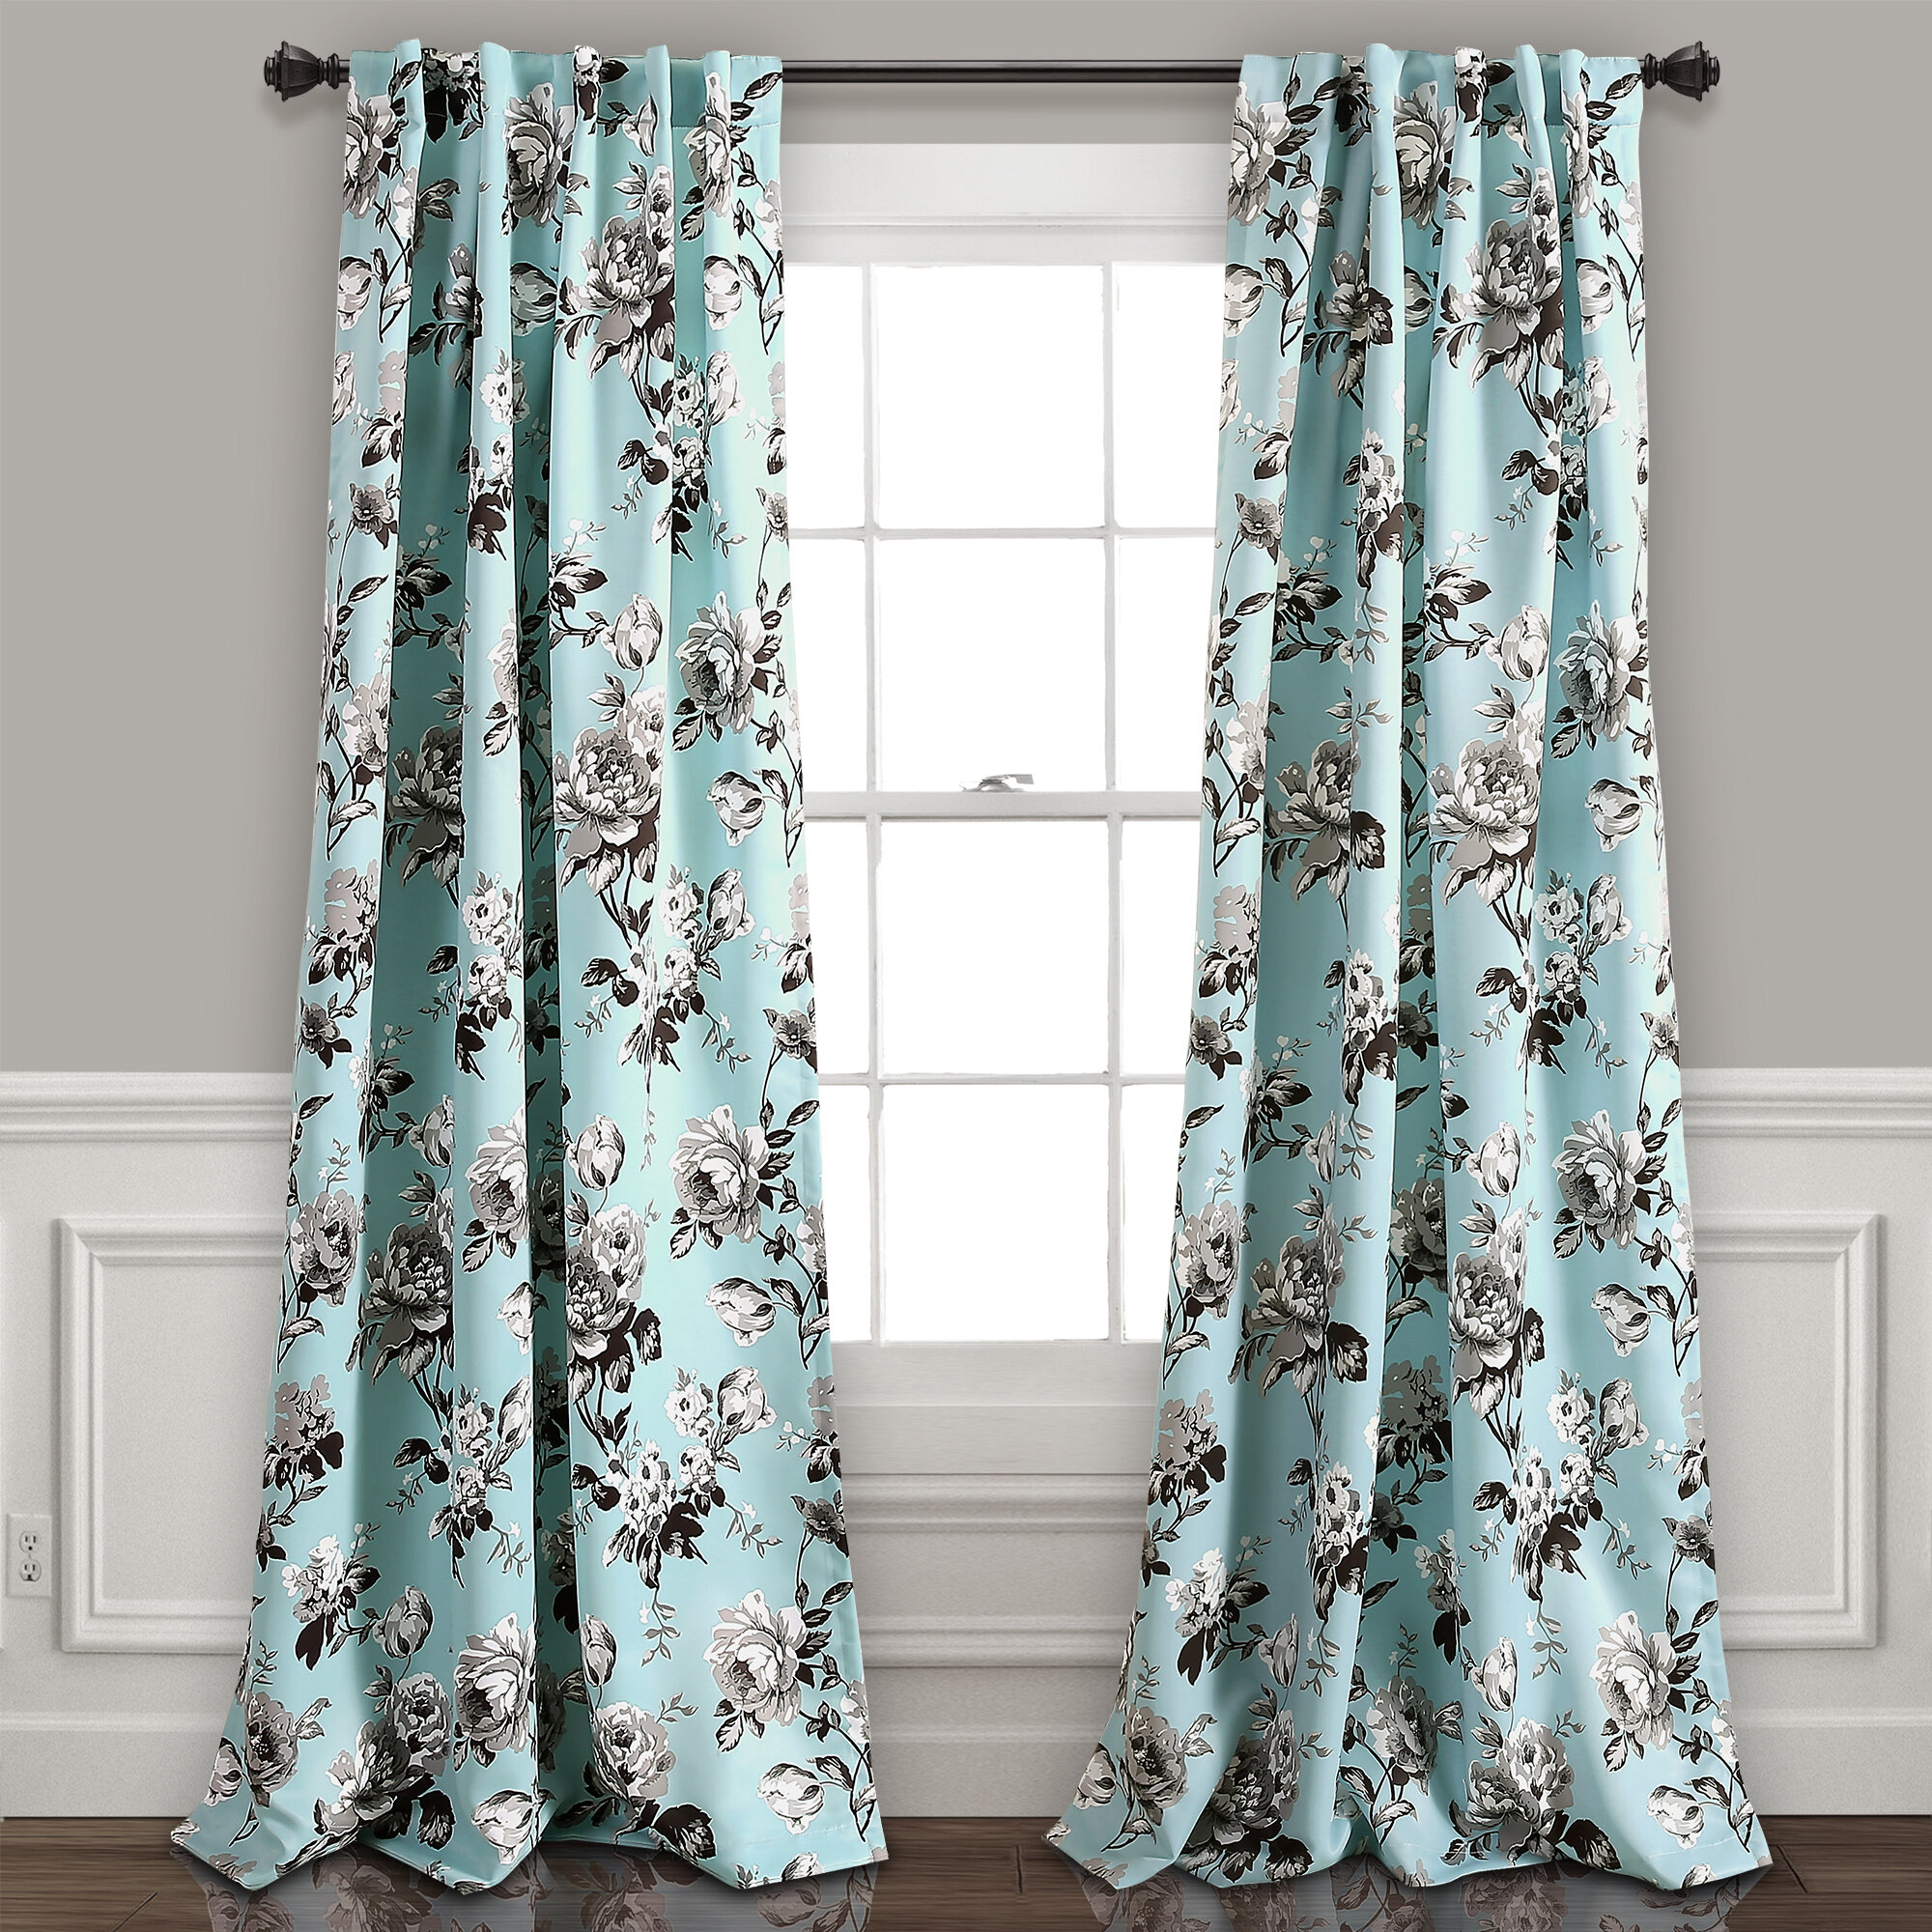 Kyles Floral Room Darkening Rod Pocket Window Curtain Panel Intended For Whitman Curtain Panel Pairs (View 22 of 30)